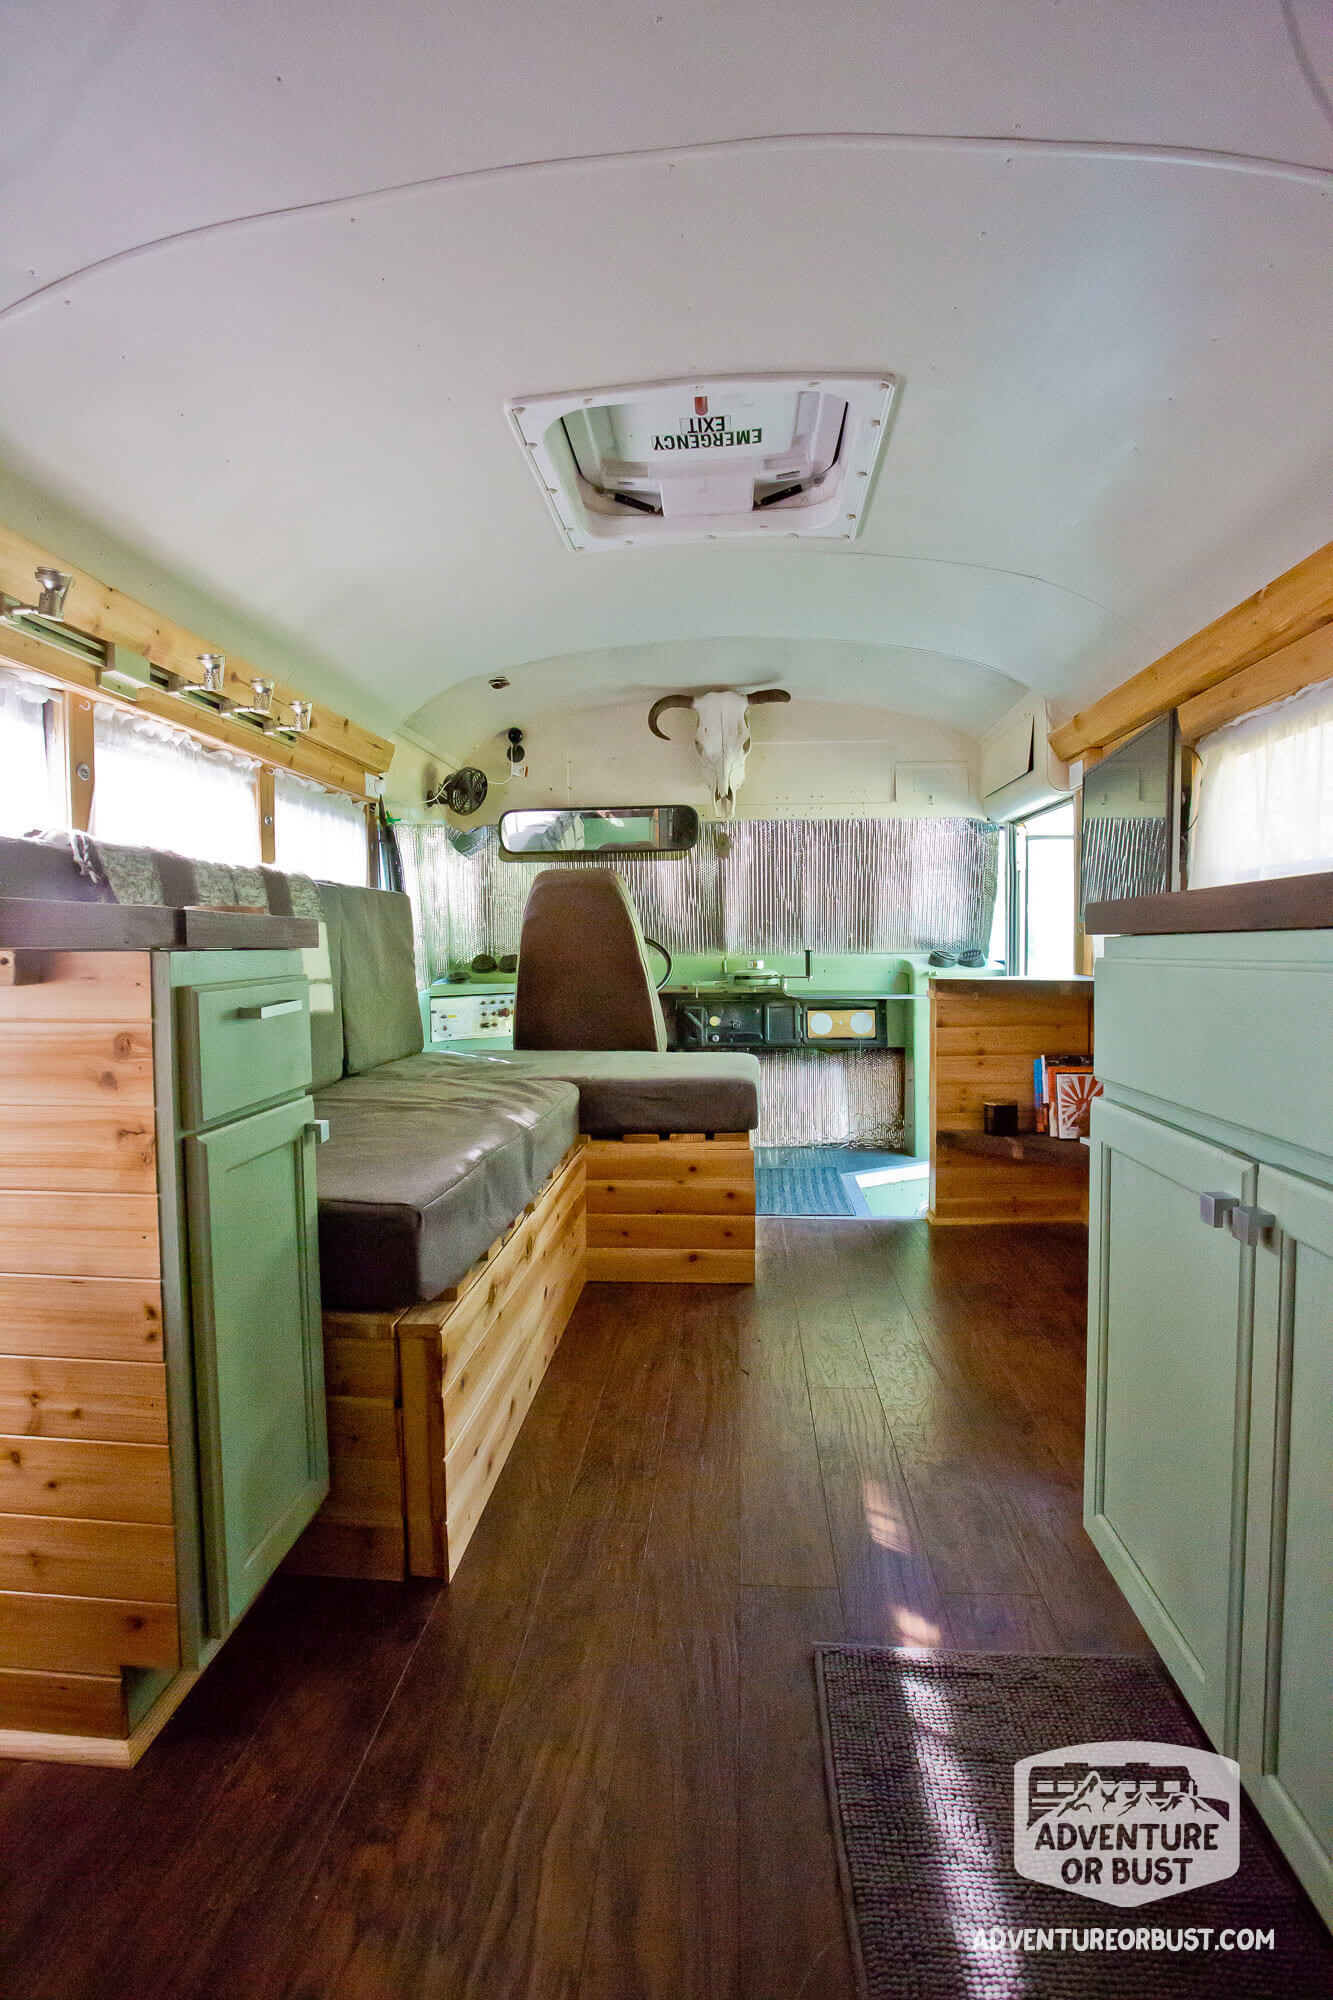 adventure or bust converted school bus completed photos